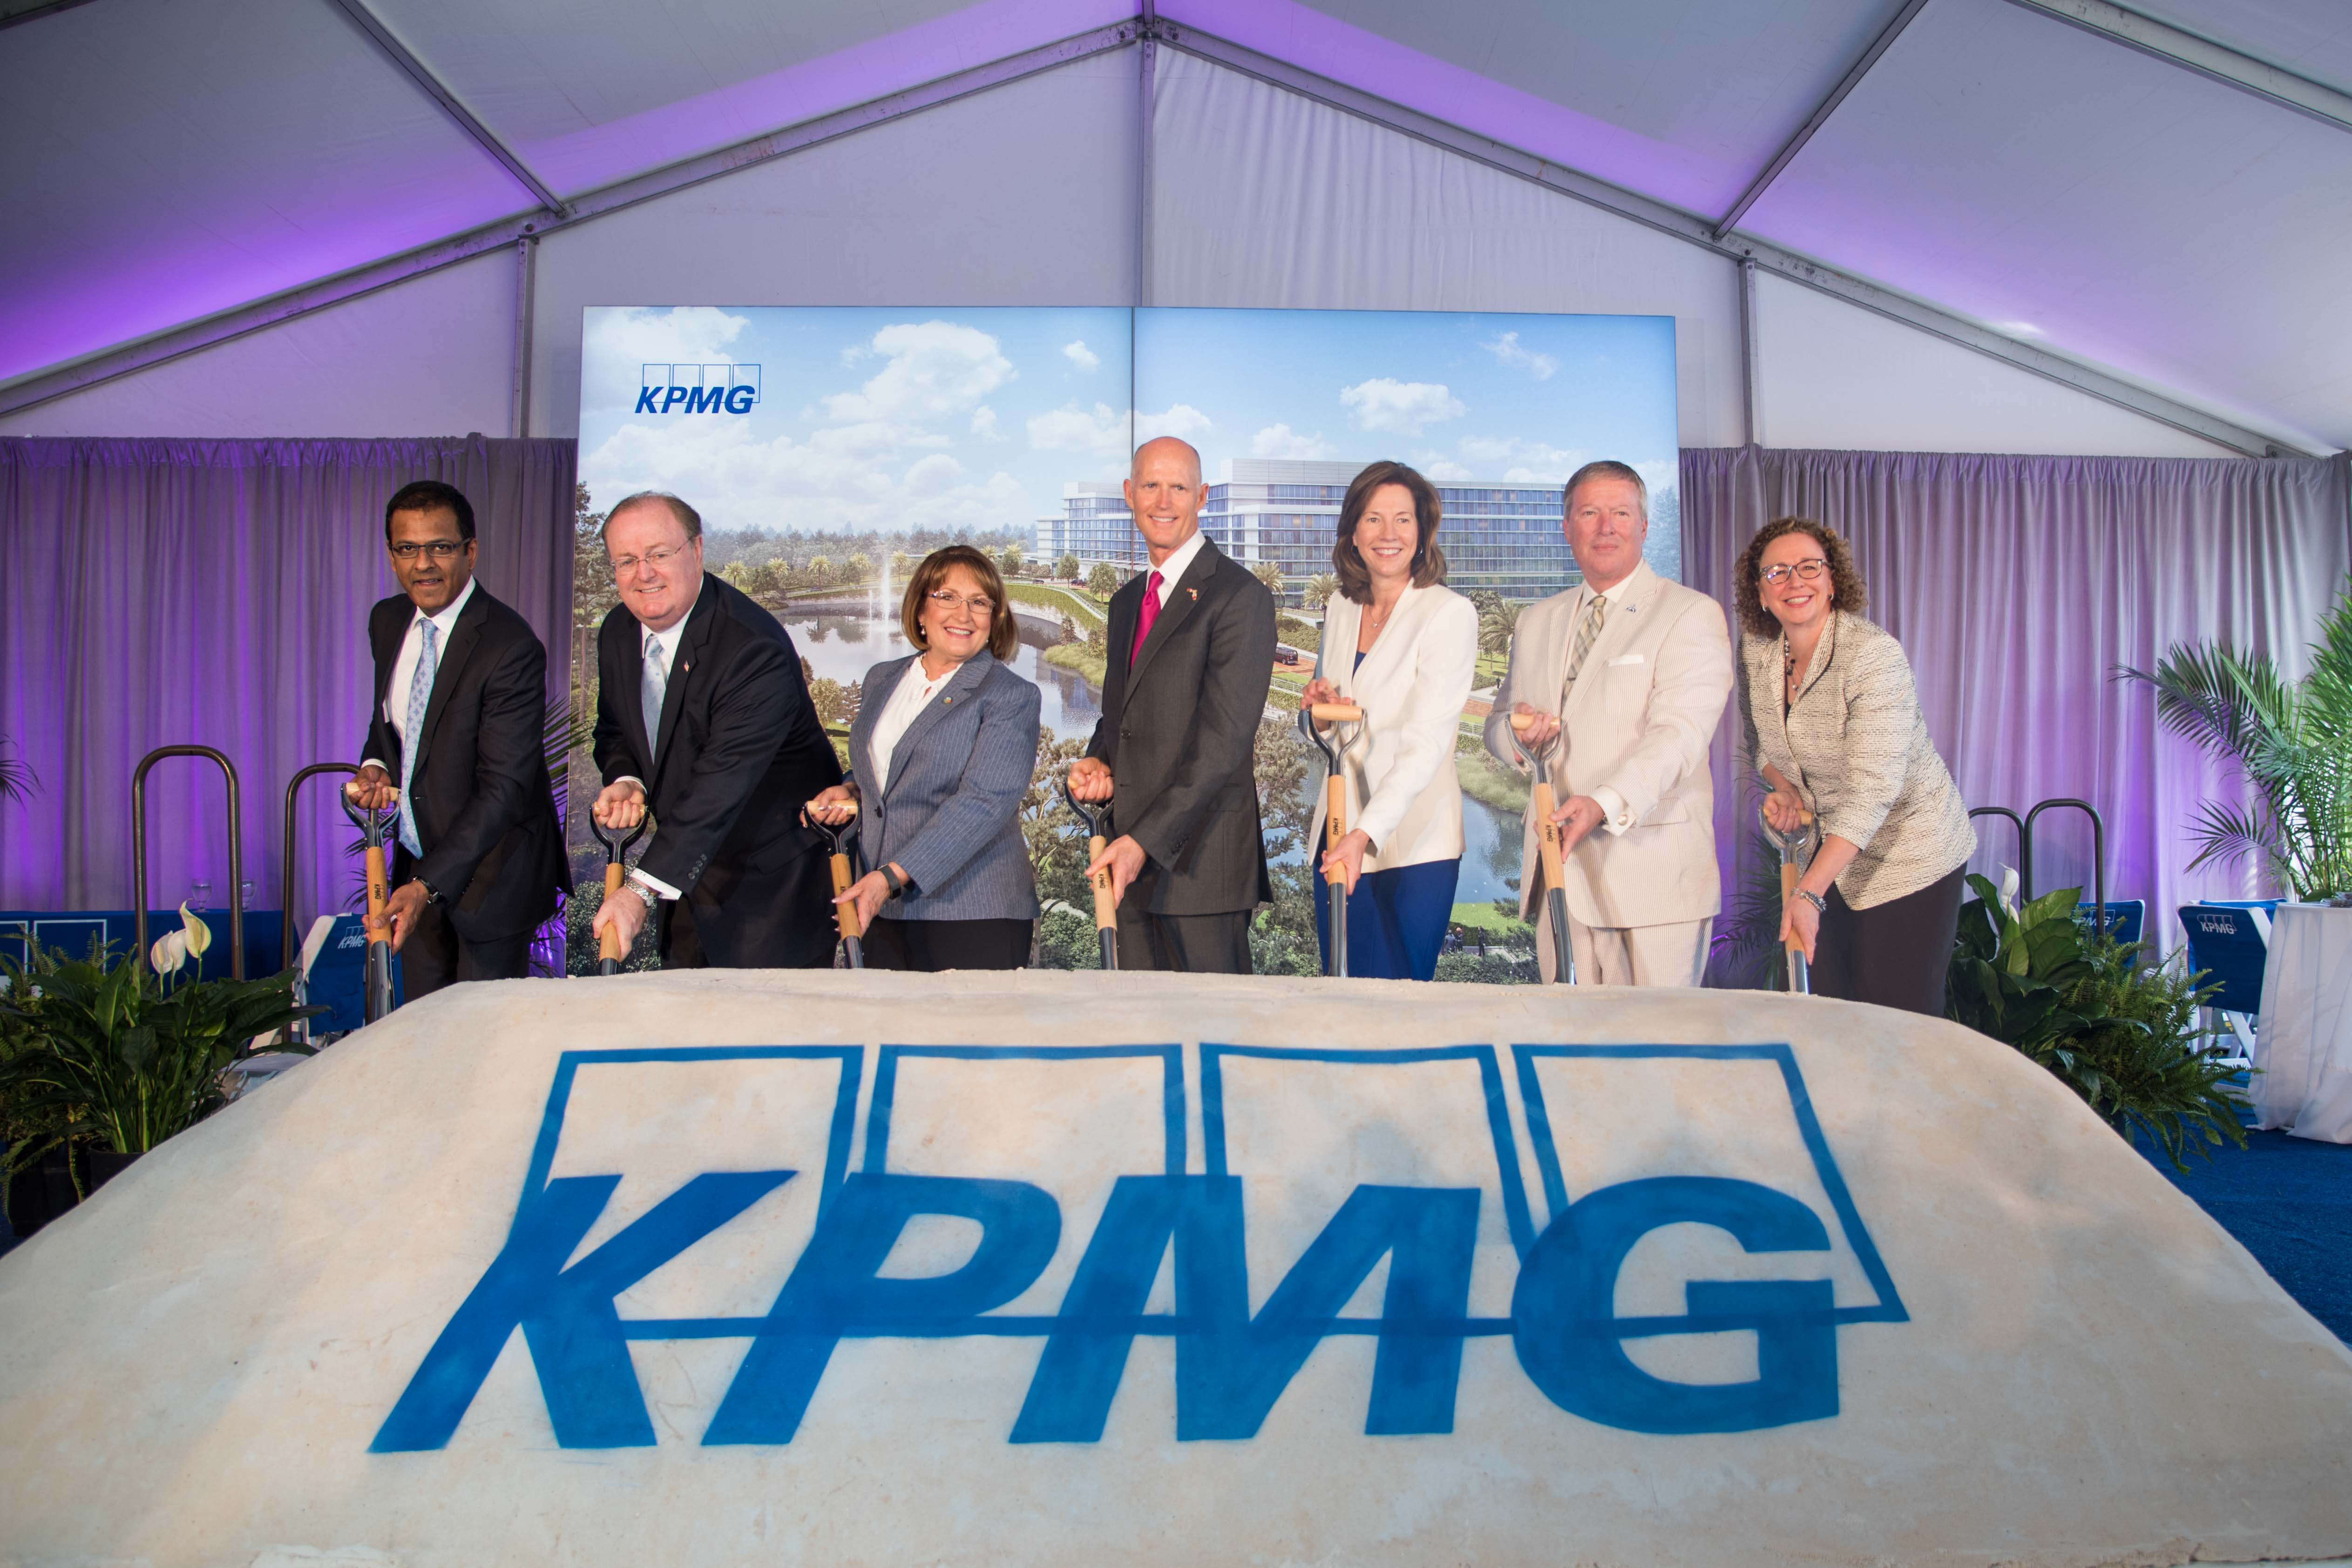 KPMG breaks ground onits largest project ever